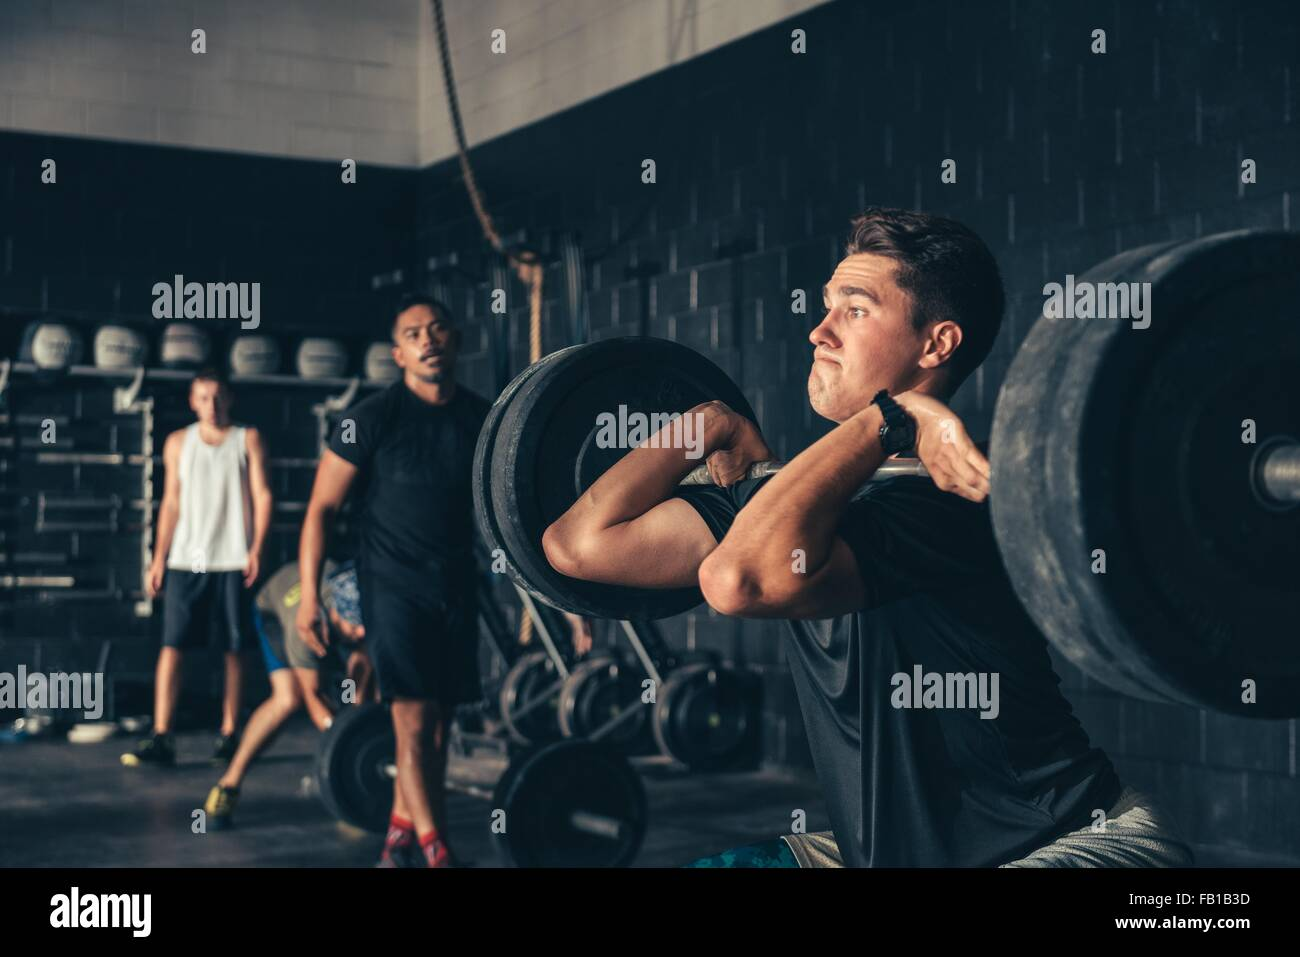 L'homme et de formation de formateurs avec barbell in gym Photo Stock